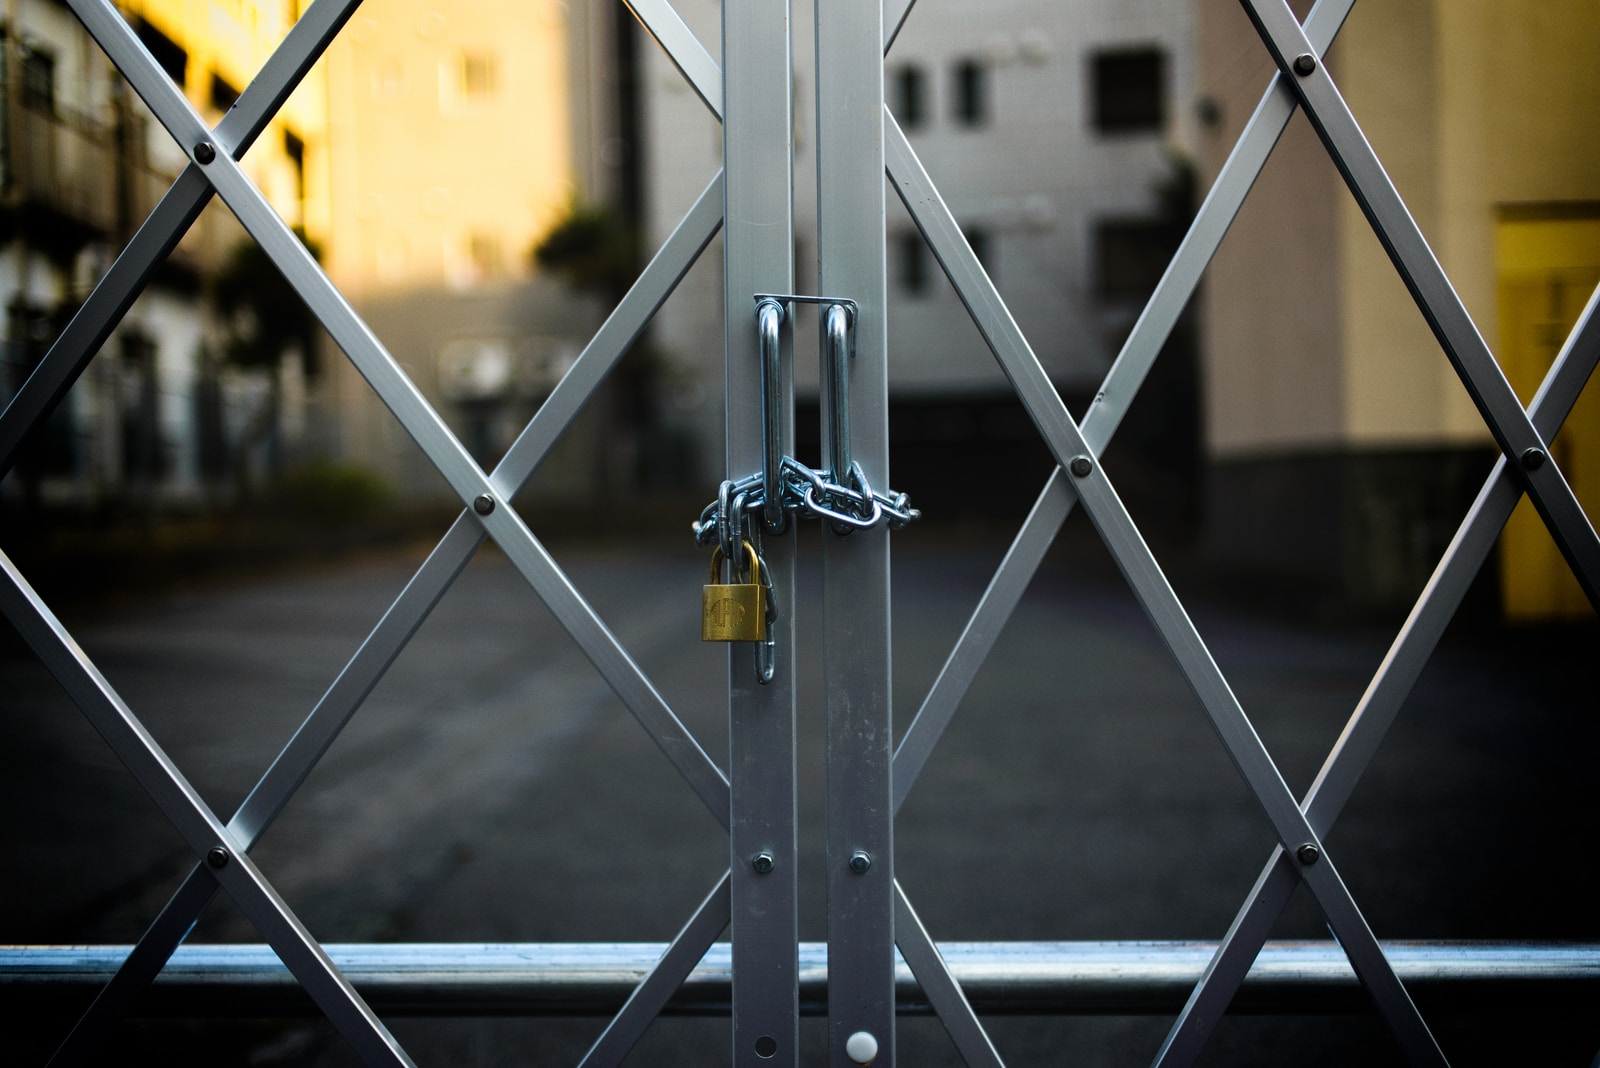 gray steel gate closed with padlock